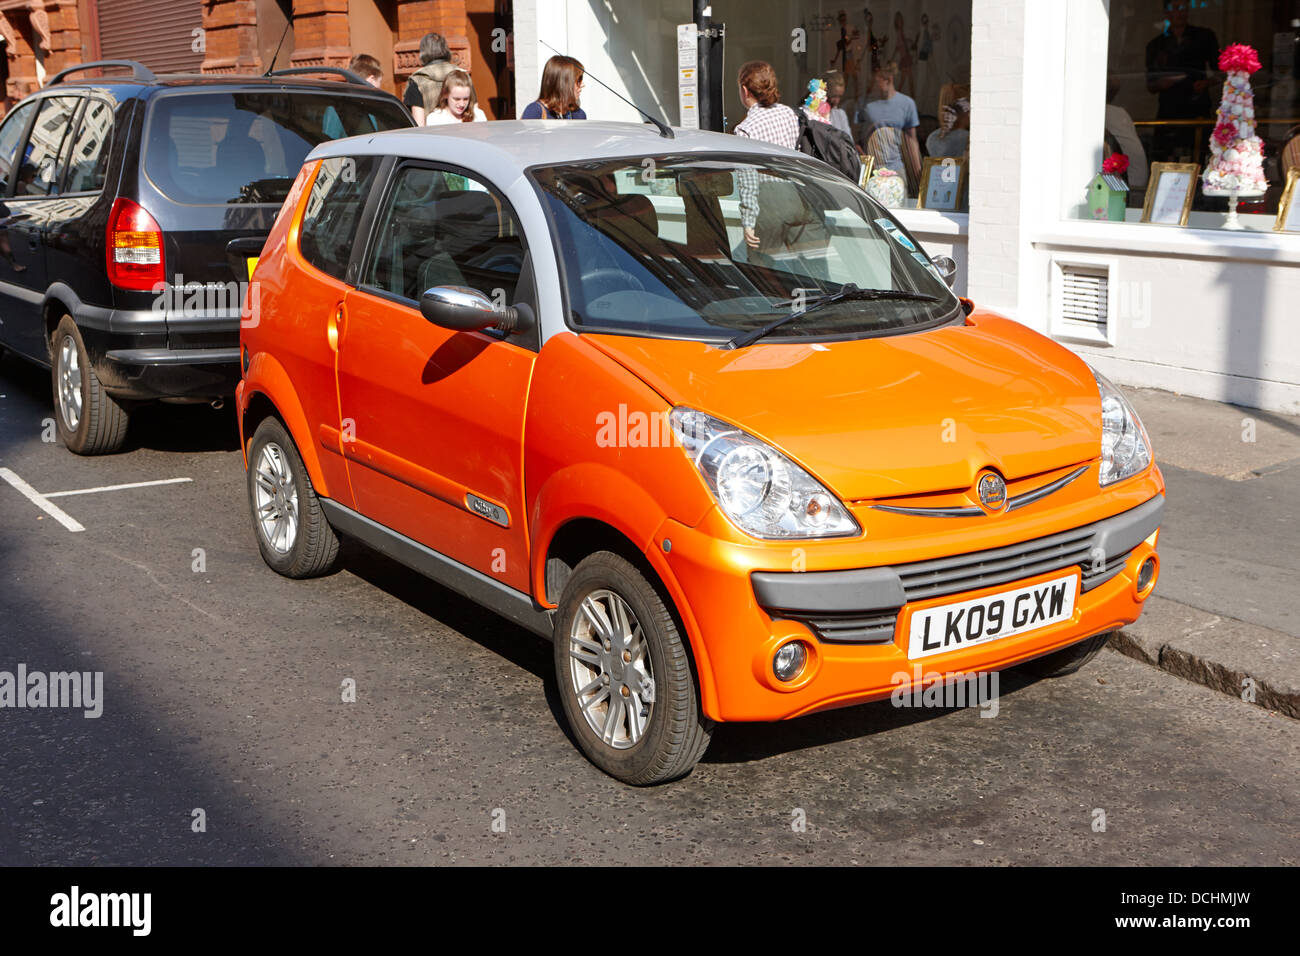 mega city electric car London England UK Stock Photo